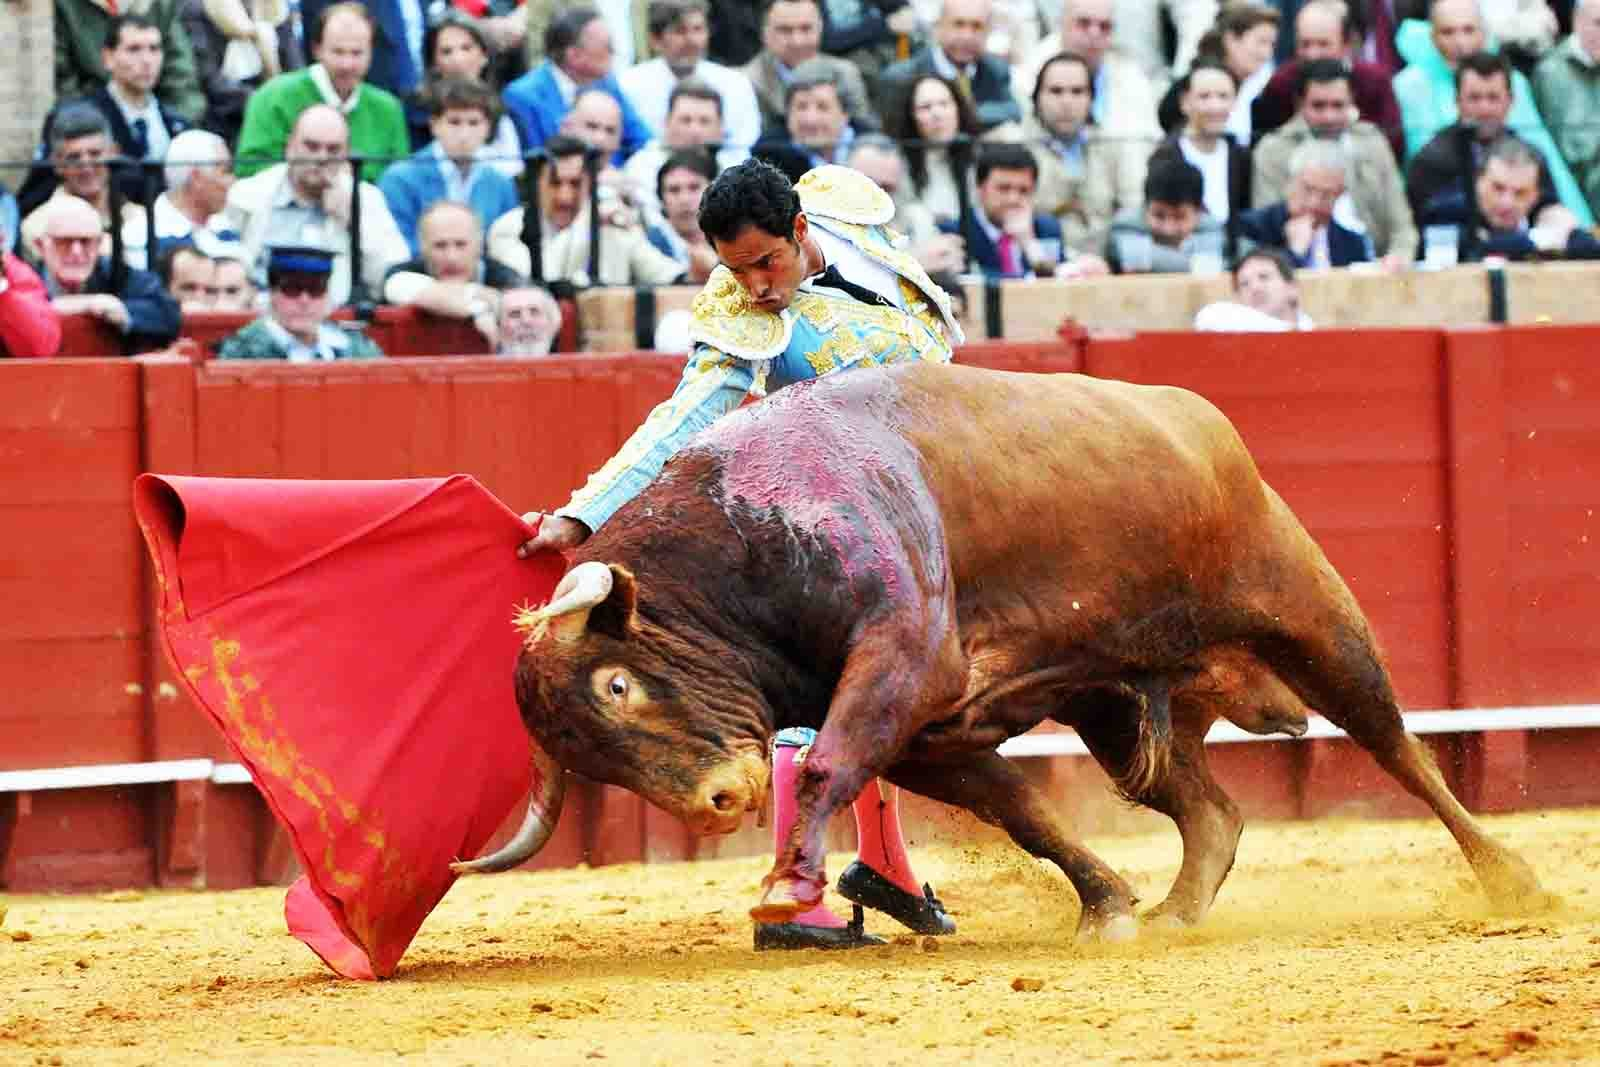 How to see corrida in Seville